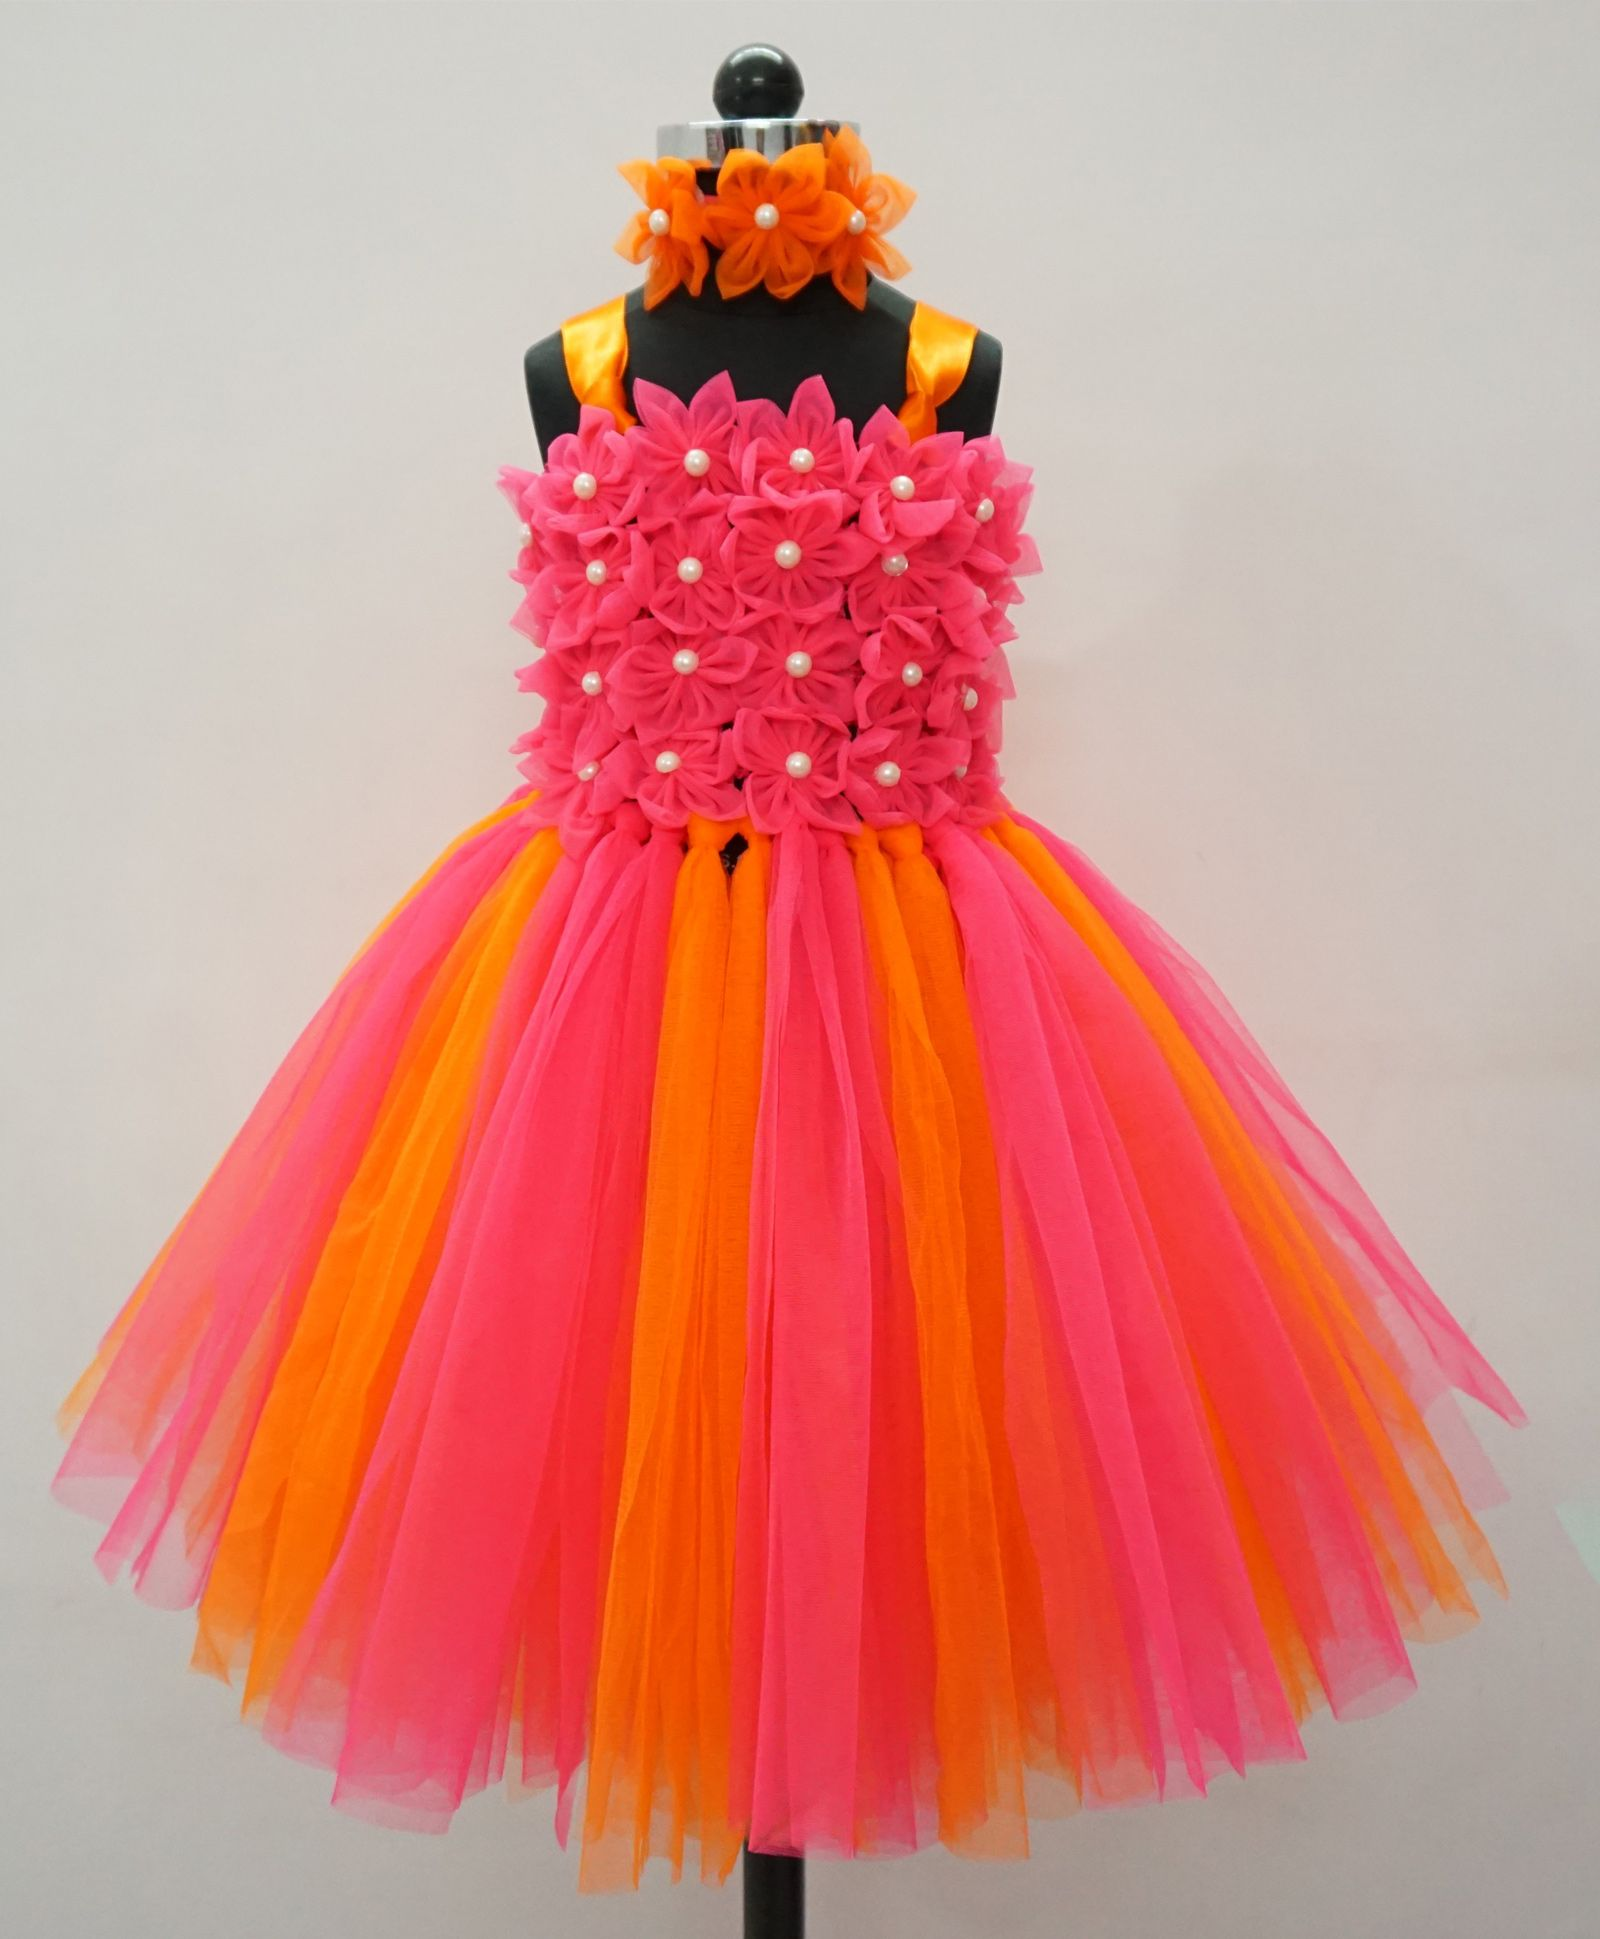 aa7c78c63 Baby Tutu Dresses For 1st Birthday India | Saddha